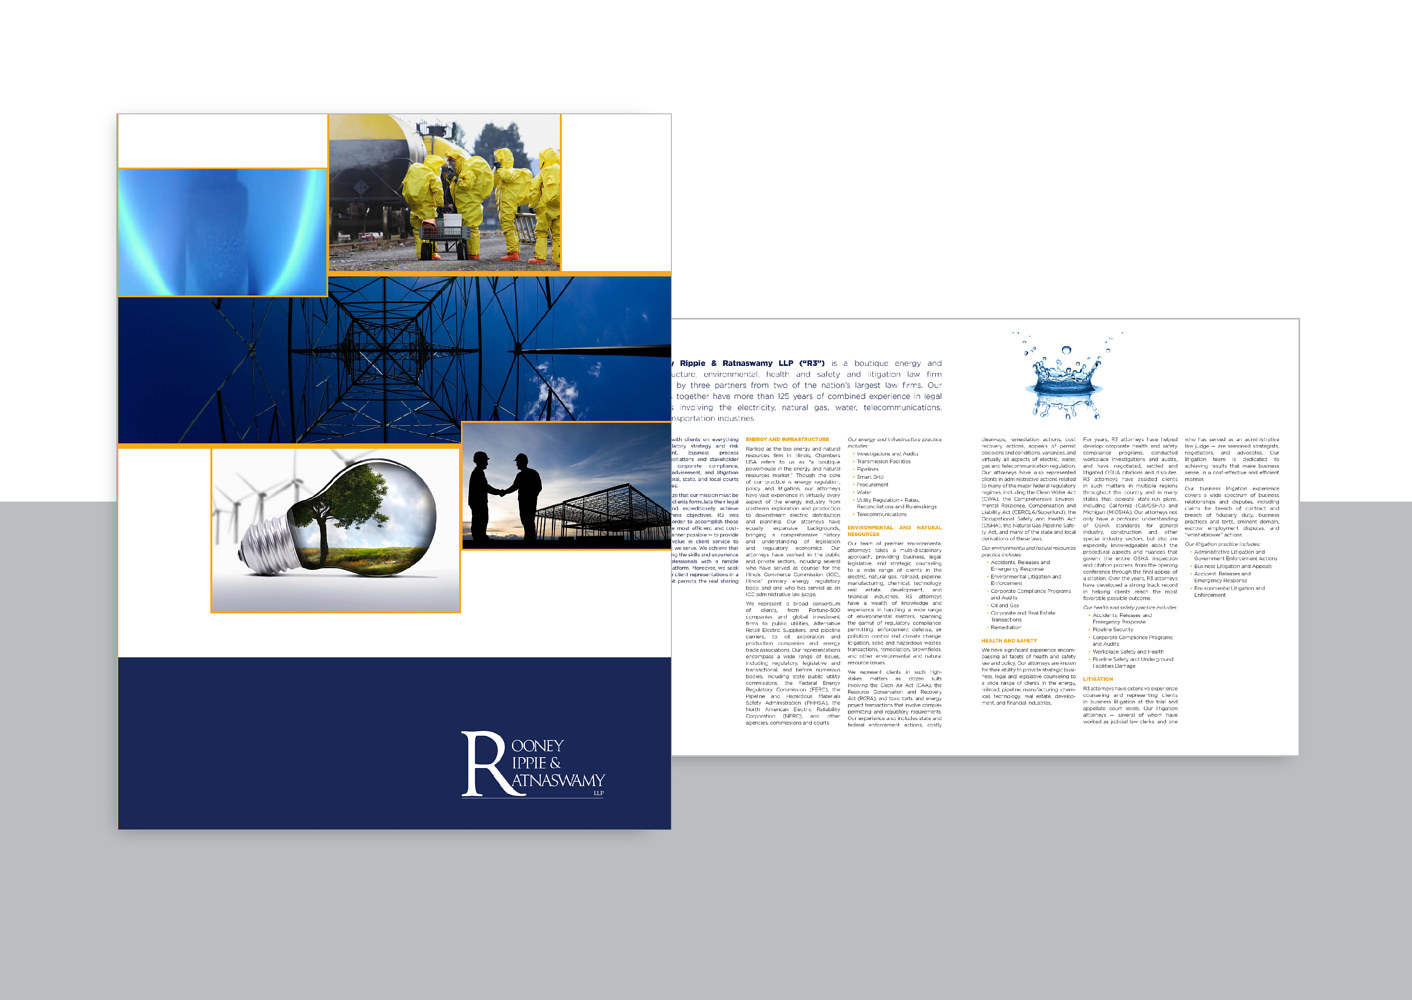 Rooney, Rippie and Ratnaswamy | Law Firm | Brochure by Nathalie Gribinski